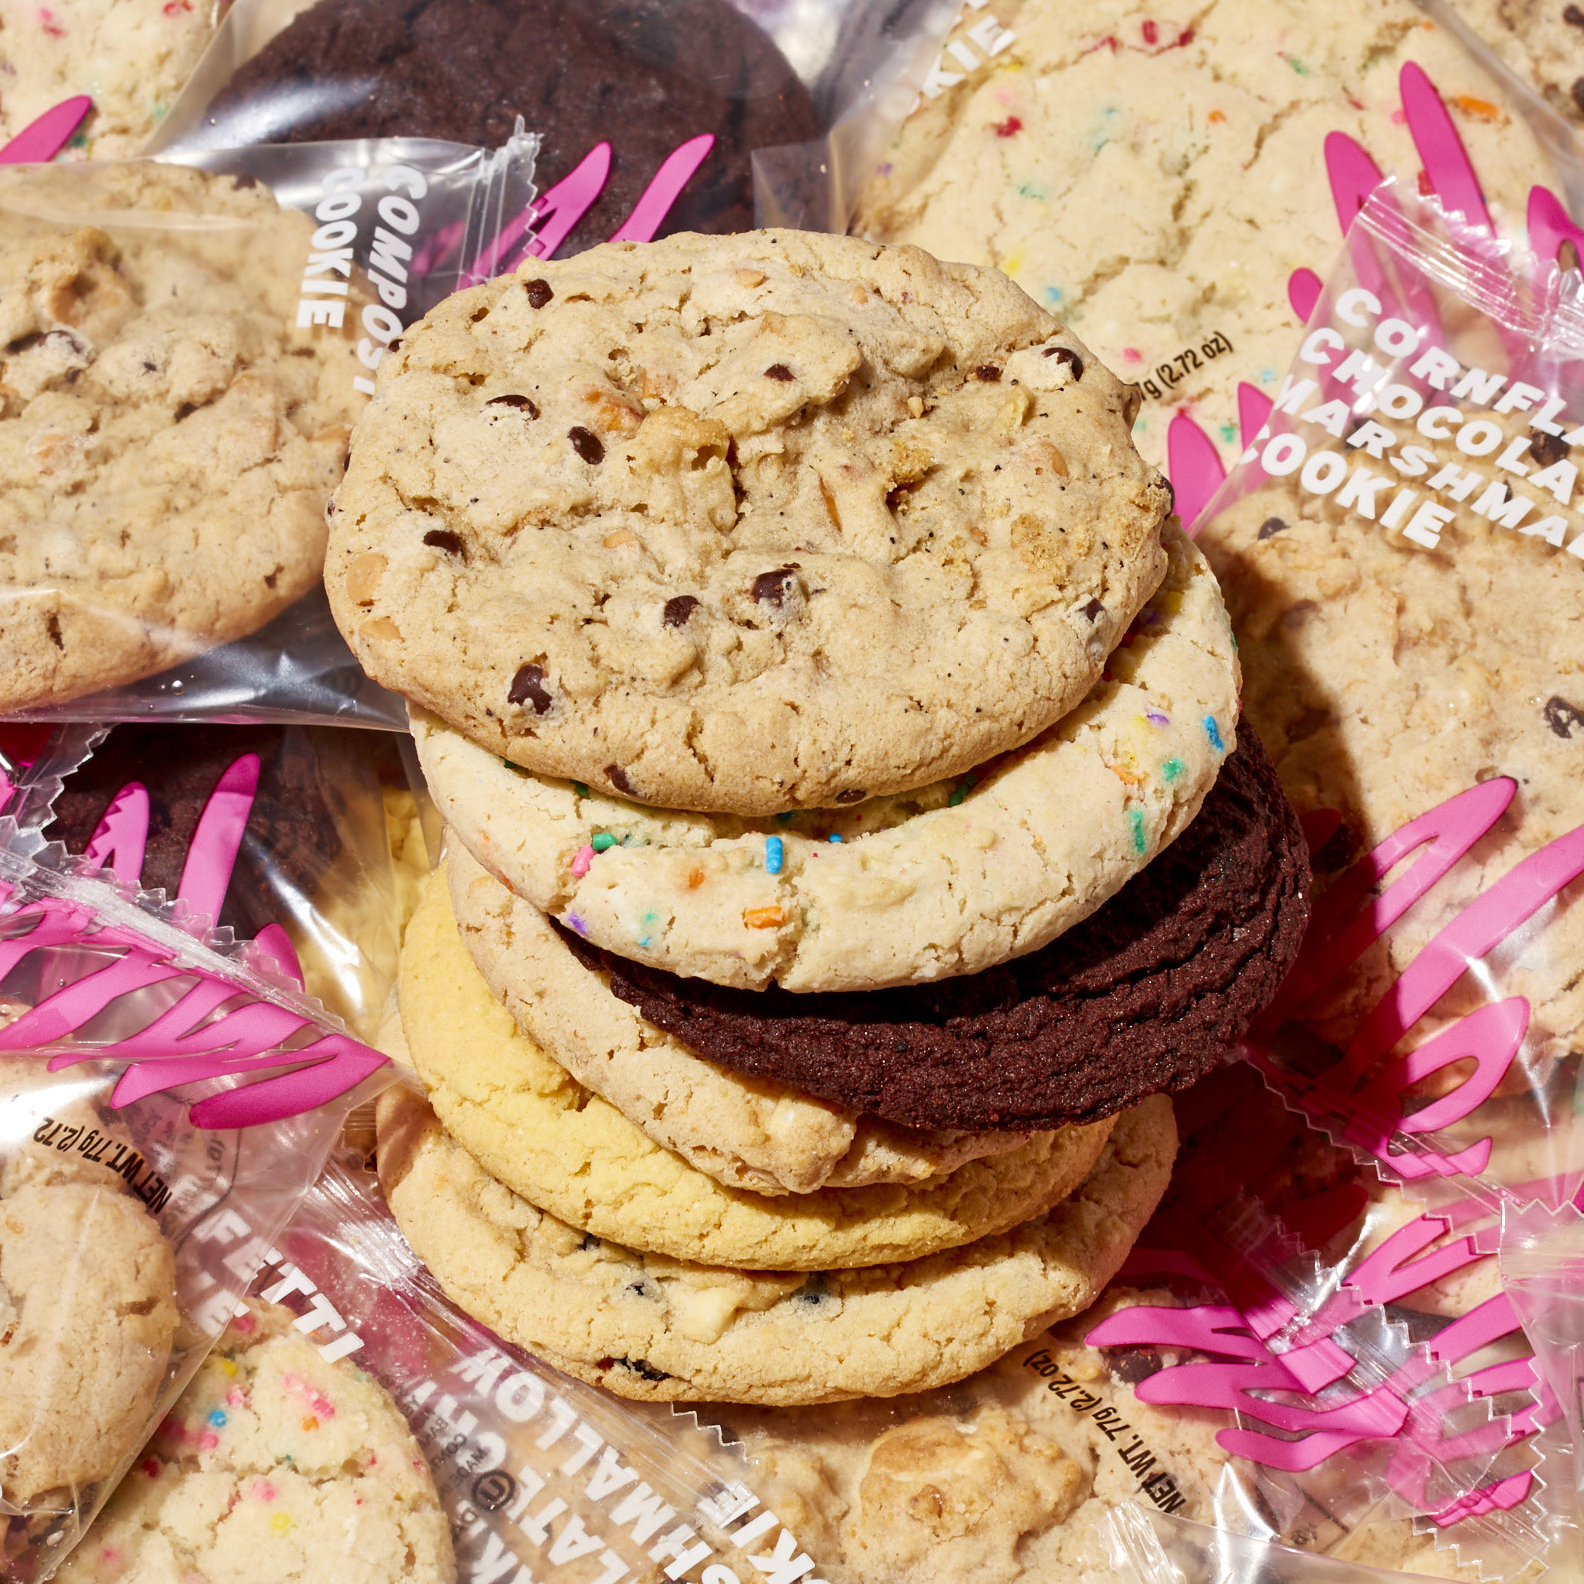 A stack of cookies sit on Milk Bar branded bags.